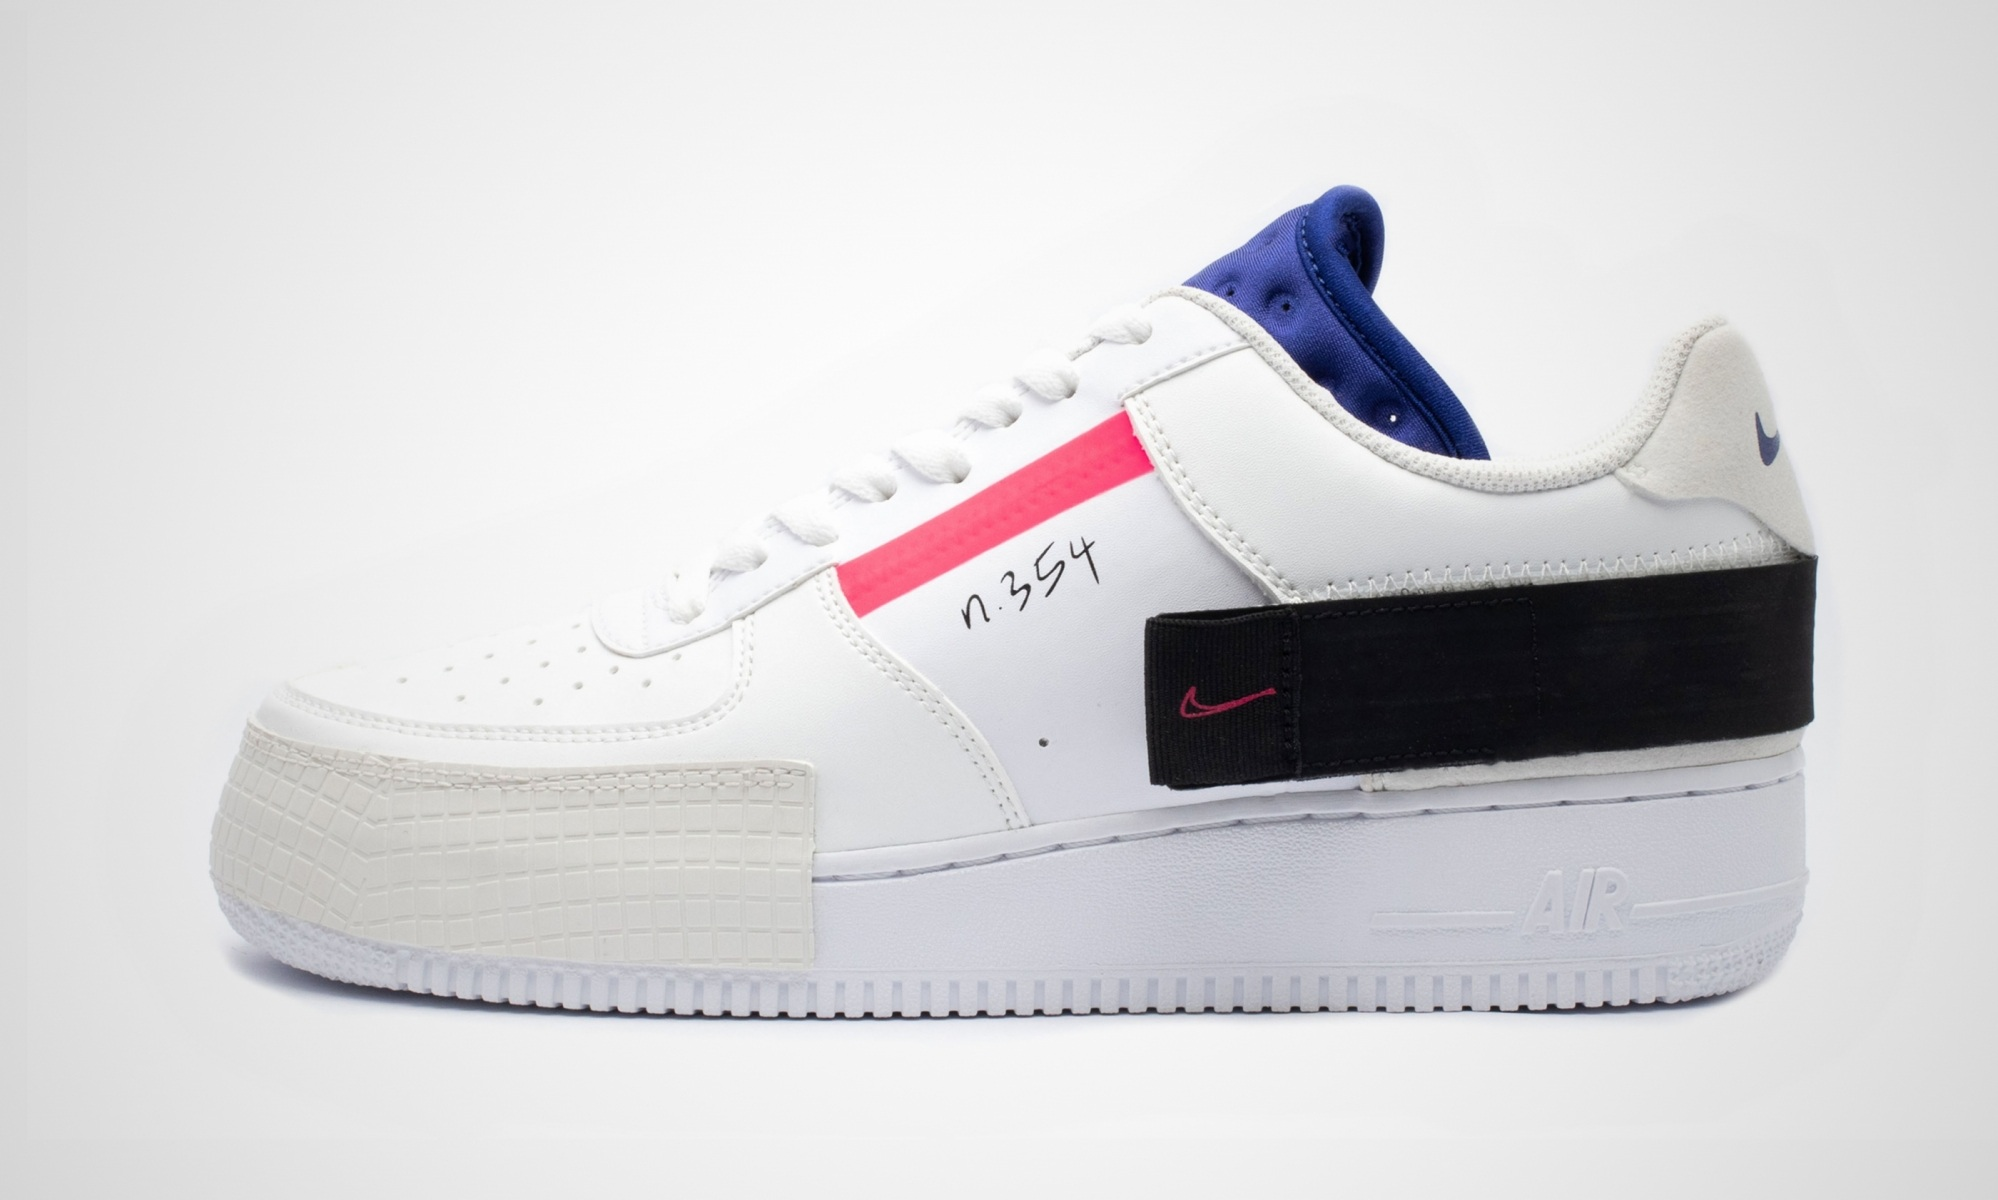 Nike Air Force 1 Low Type 354